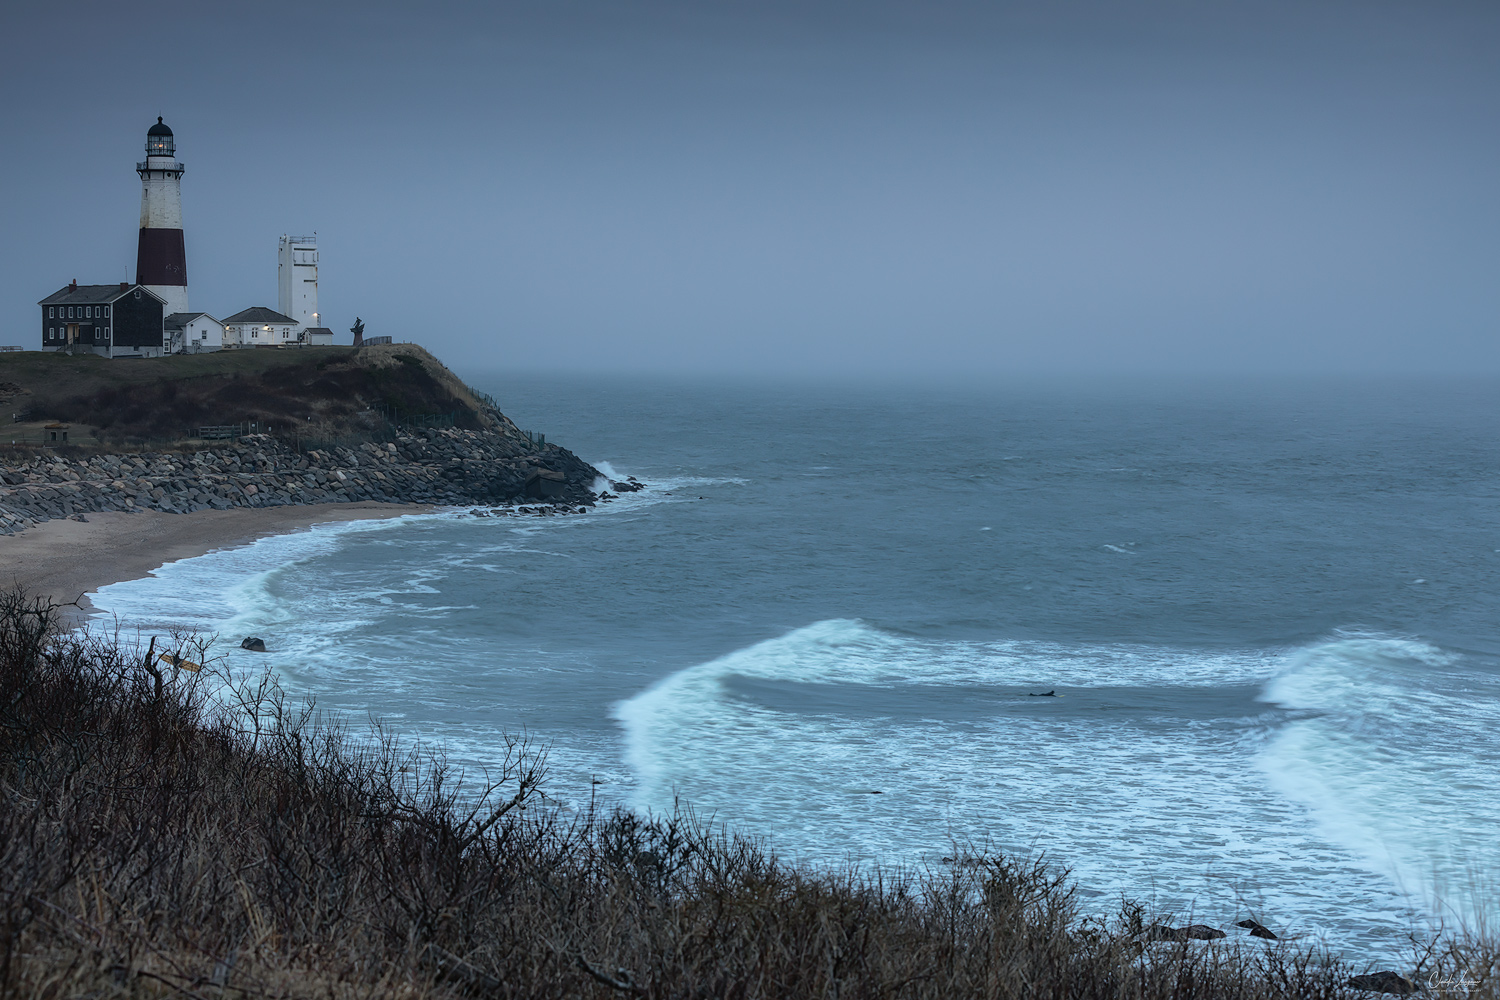 View of Montauk Point Lighthouse in New York.